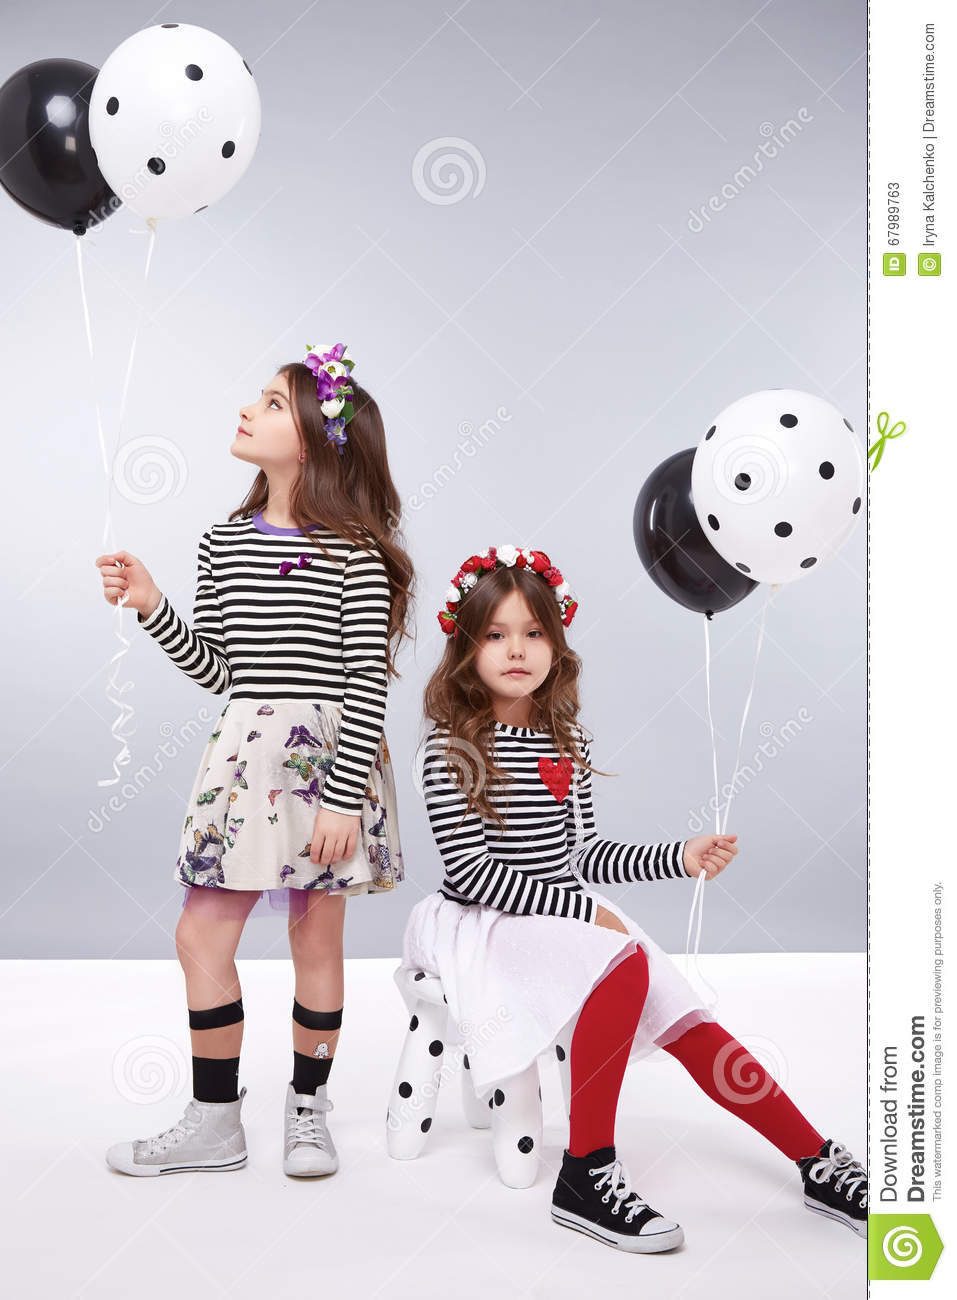 e2671a977 Dress Girl Clothing Small Collection Cute Stock Image - Image of ...